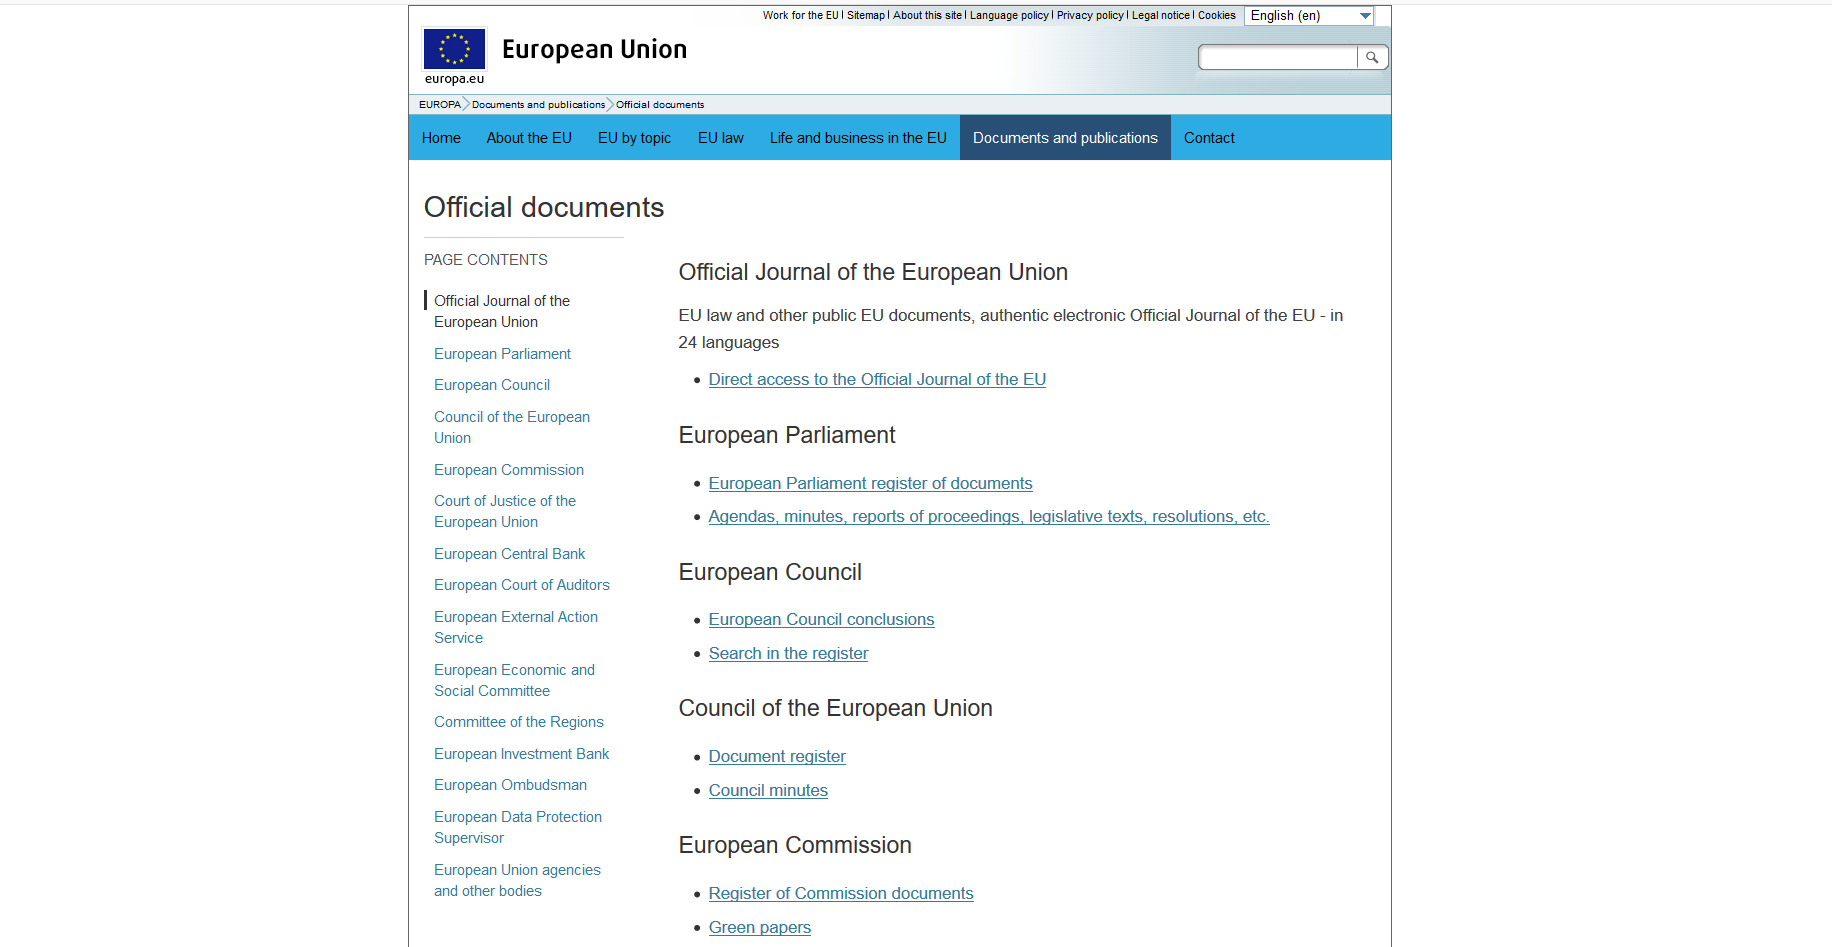 European Union Official Documents